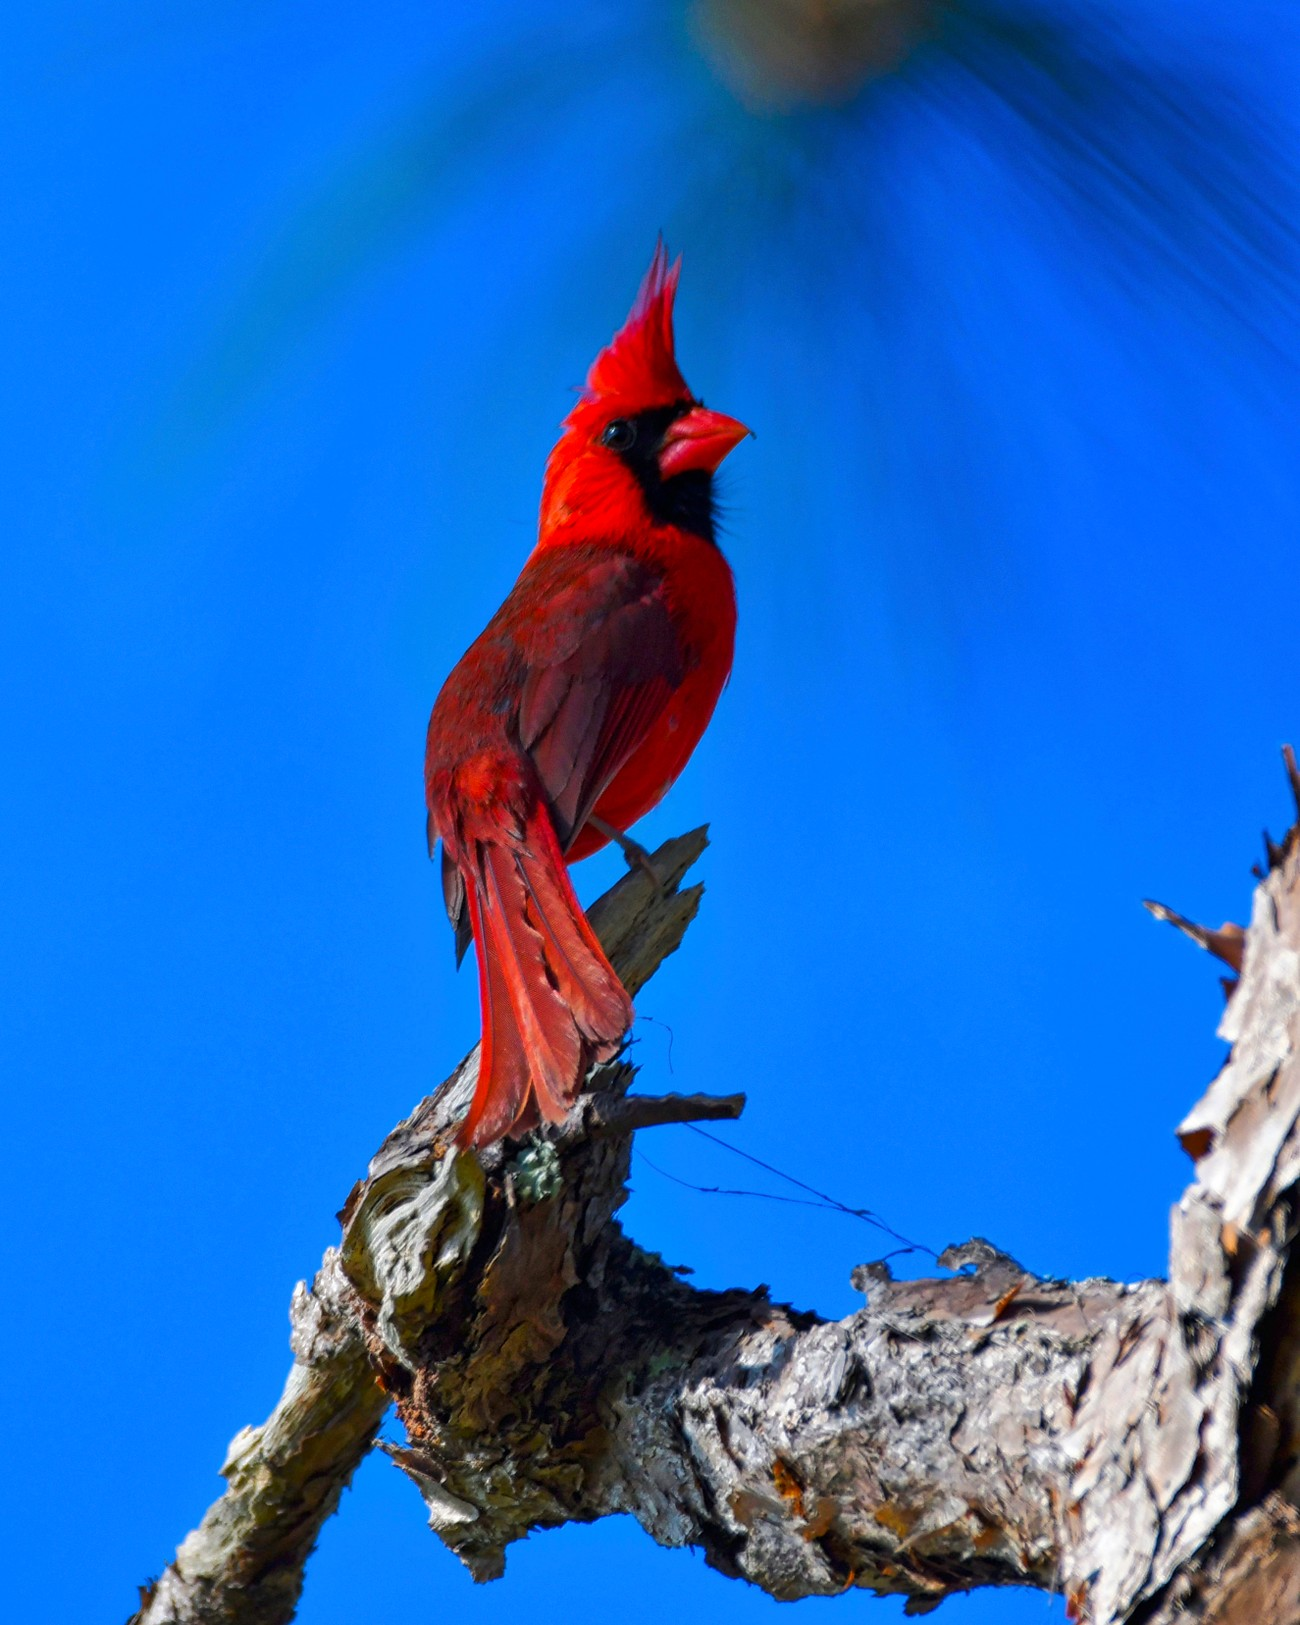 Handsome male cardinal poses in a pine tree at Oscar Scherer State Park near Sarasota, Fl